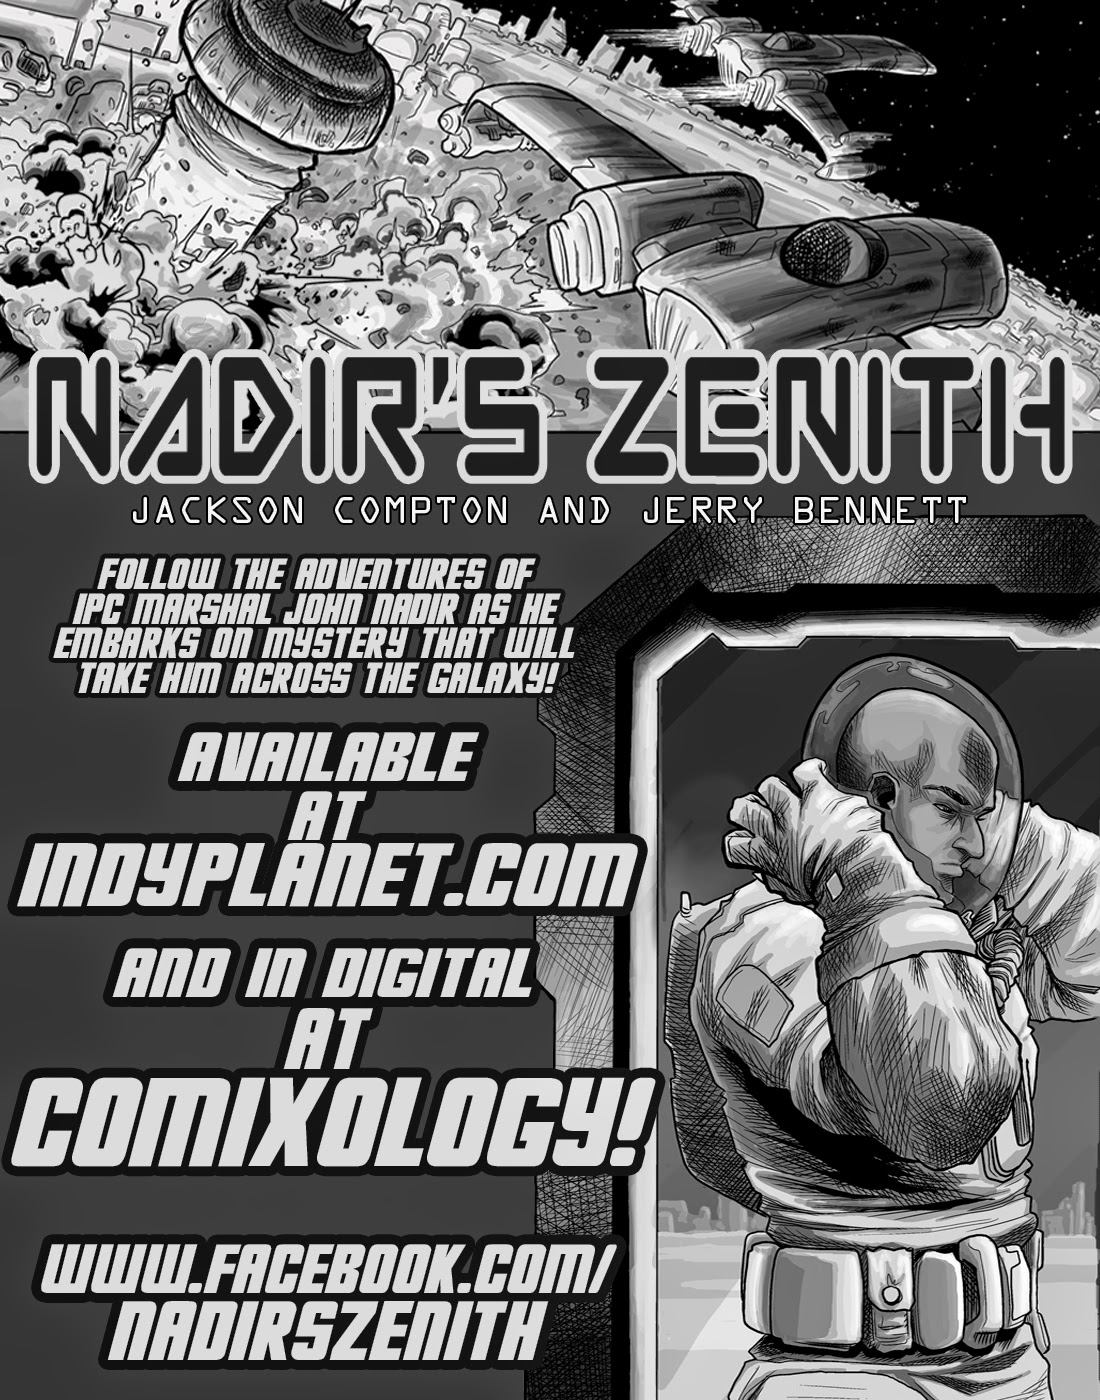 Nadir's Zenith on Facebook!